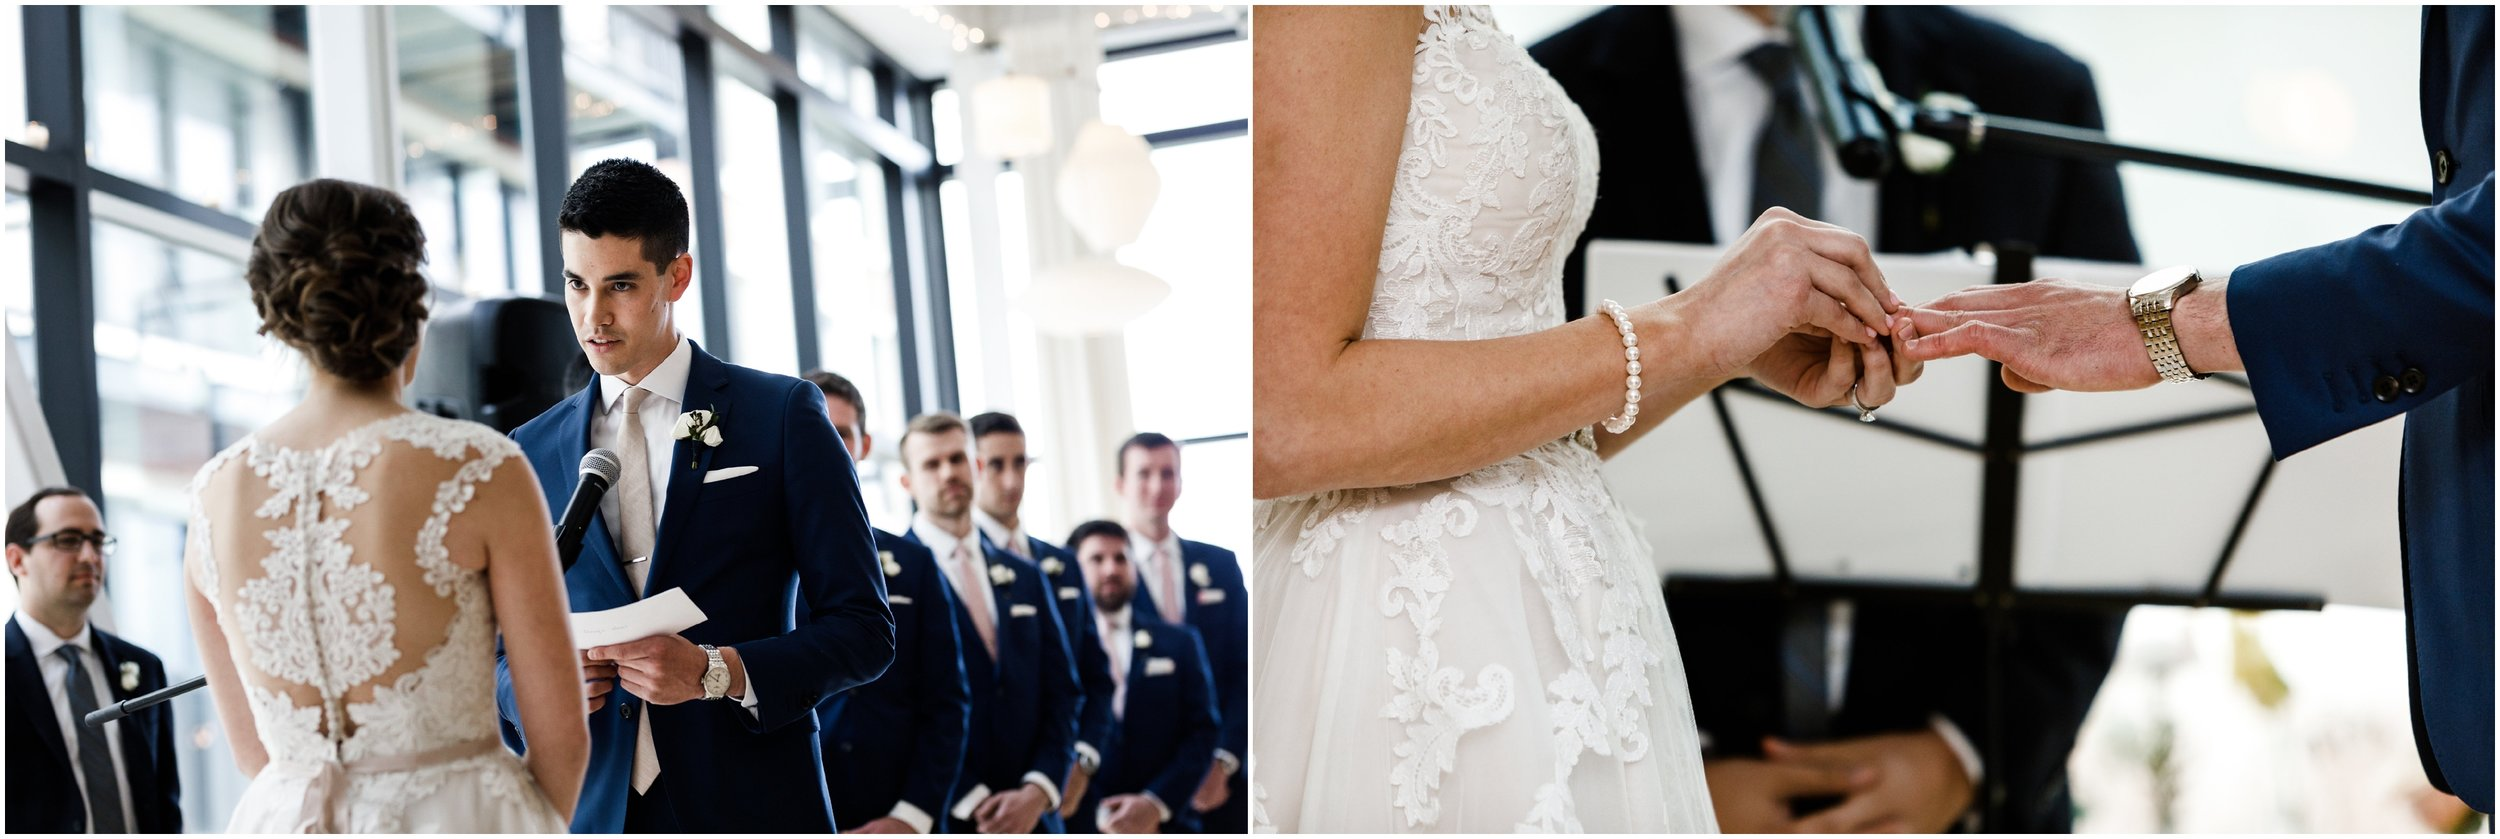 groom reading wedding vows at Greenhouse Loft in Chicago